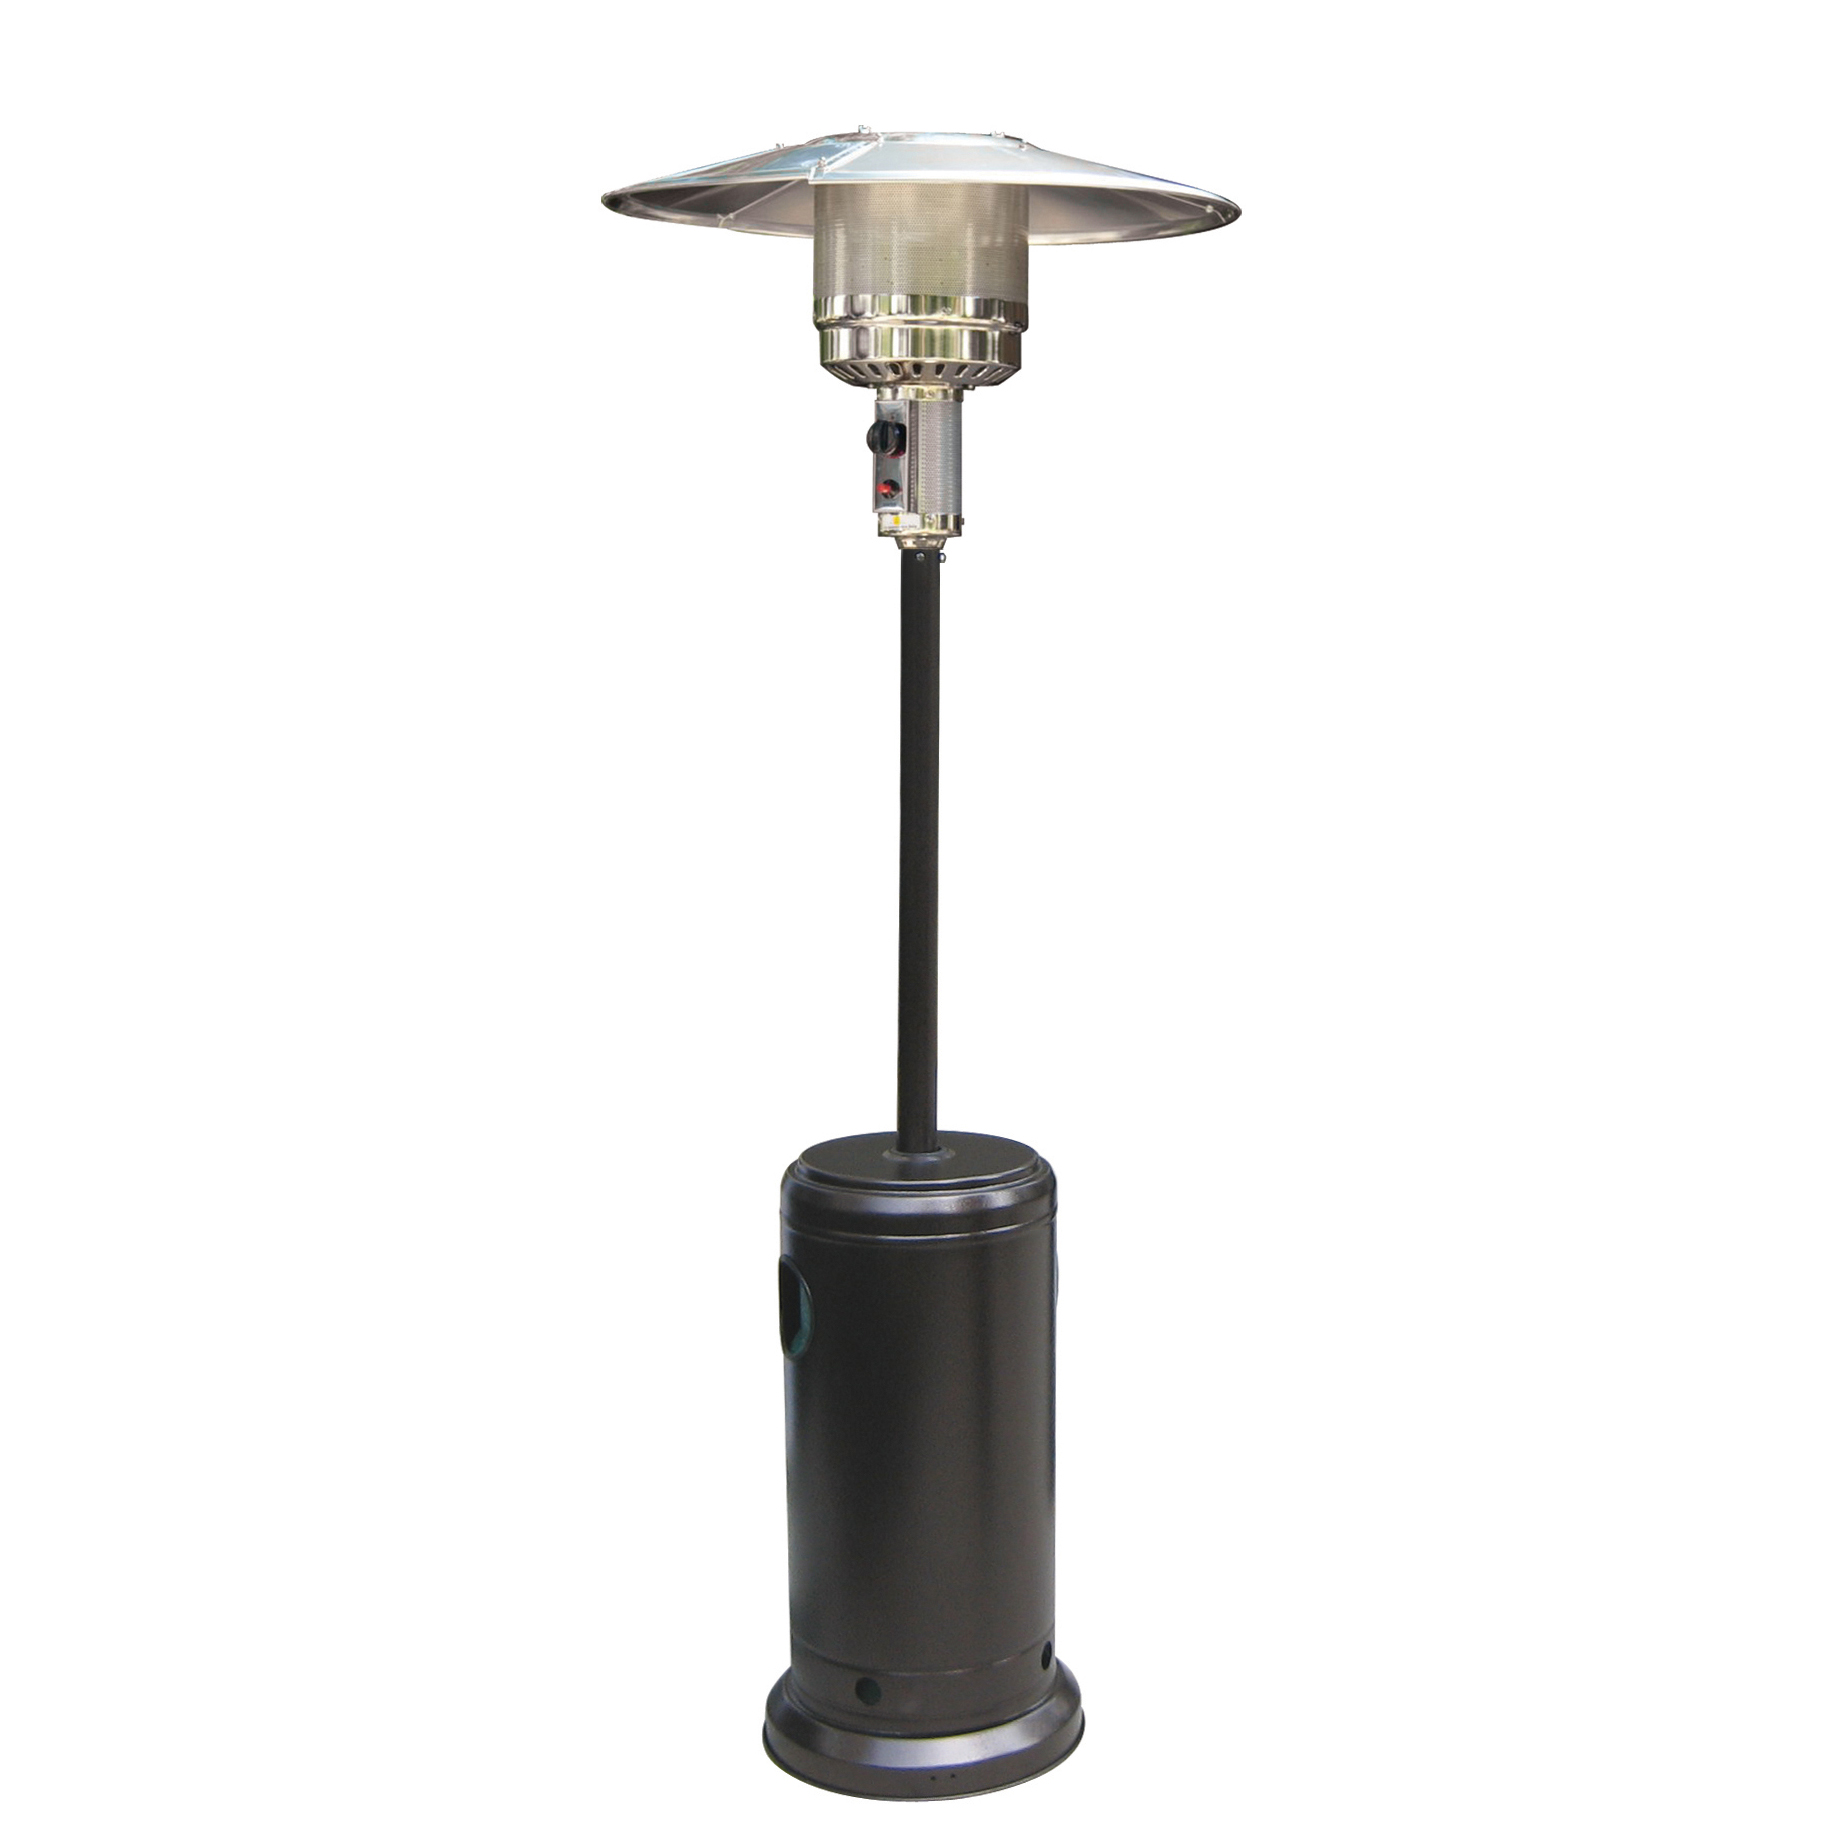 Black Powder Coated Hammered Metal Steel Outdoor Garden